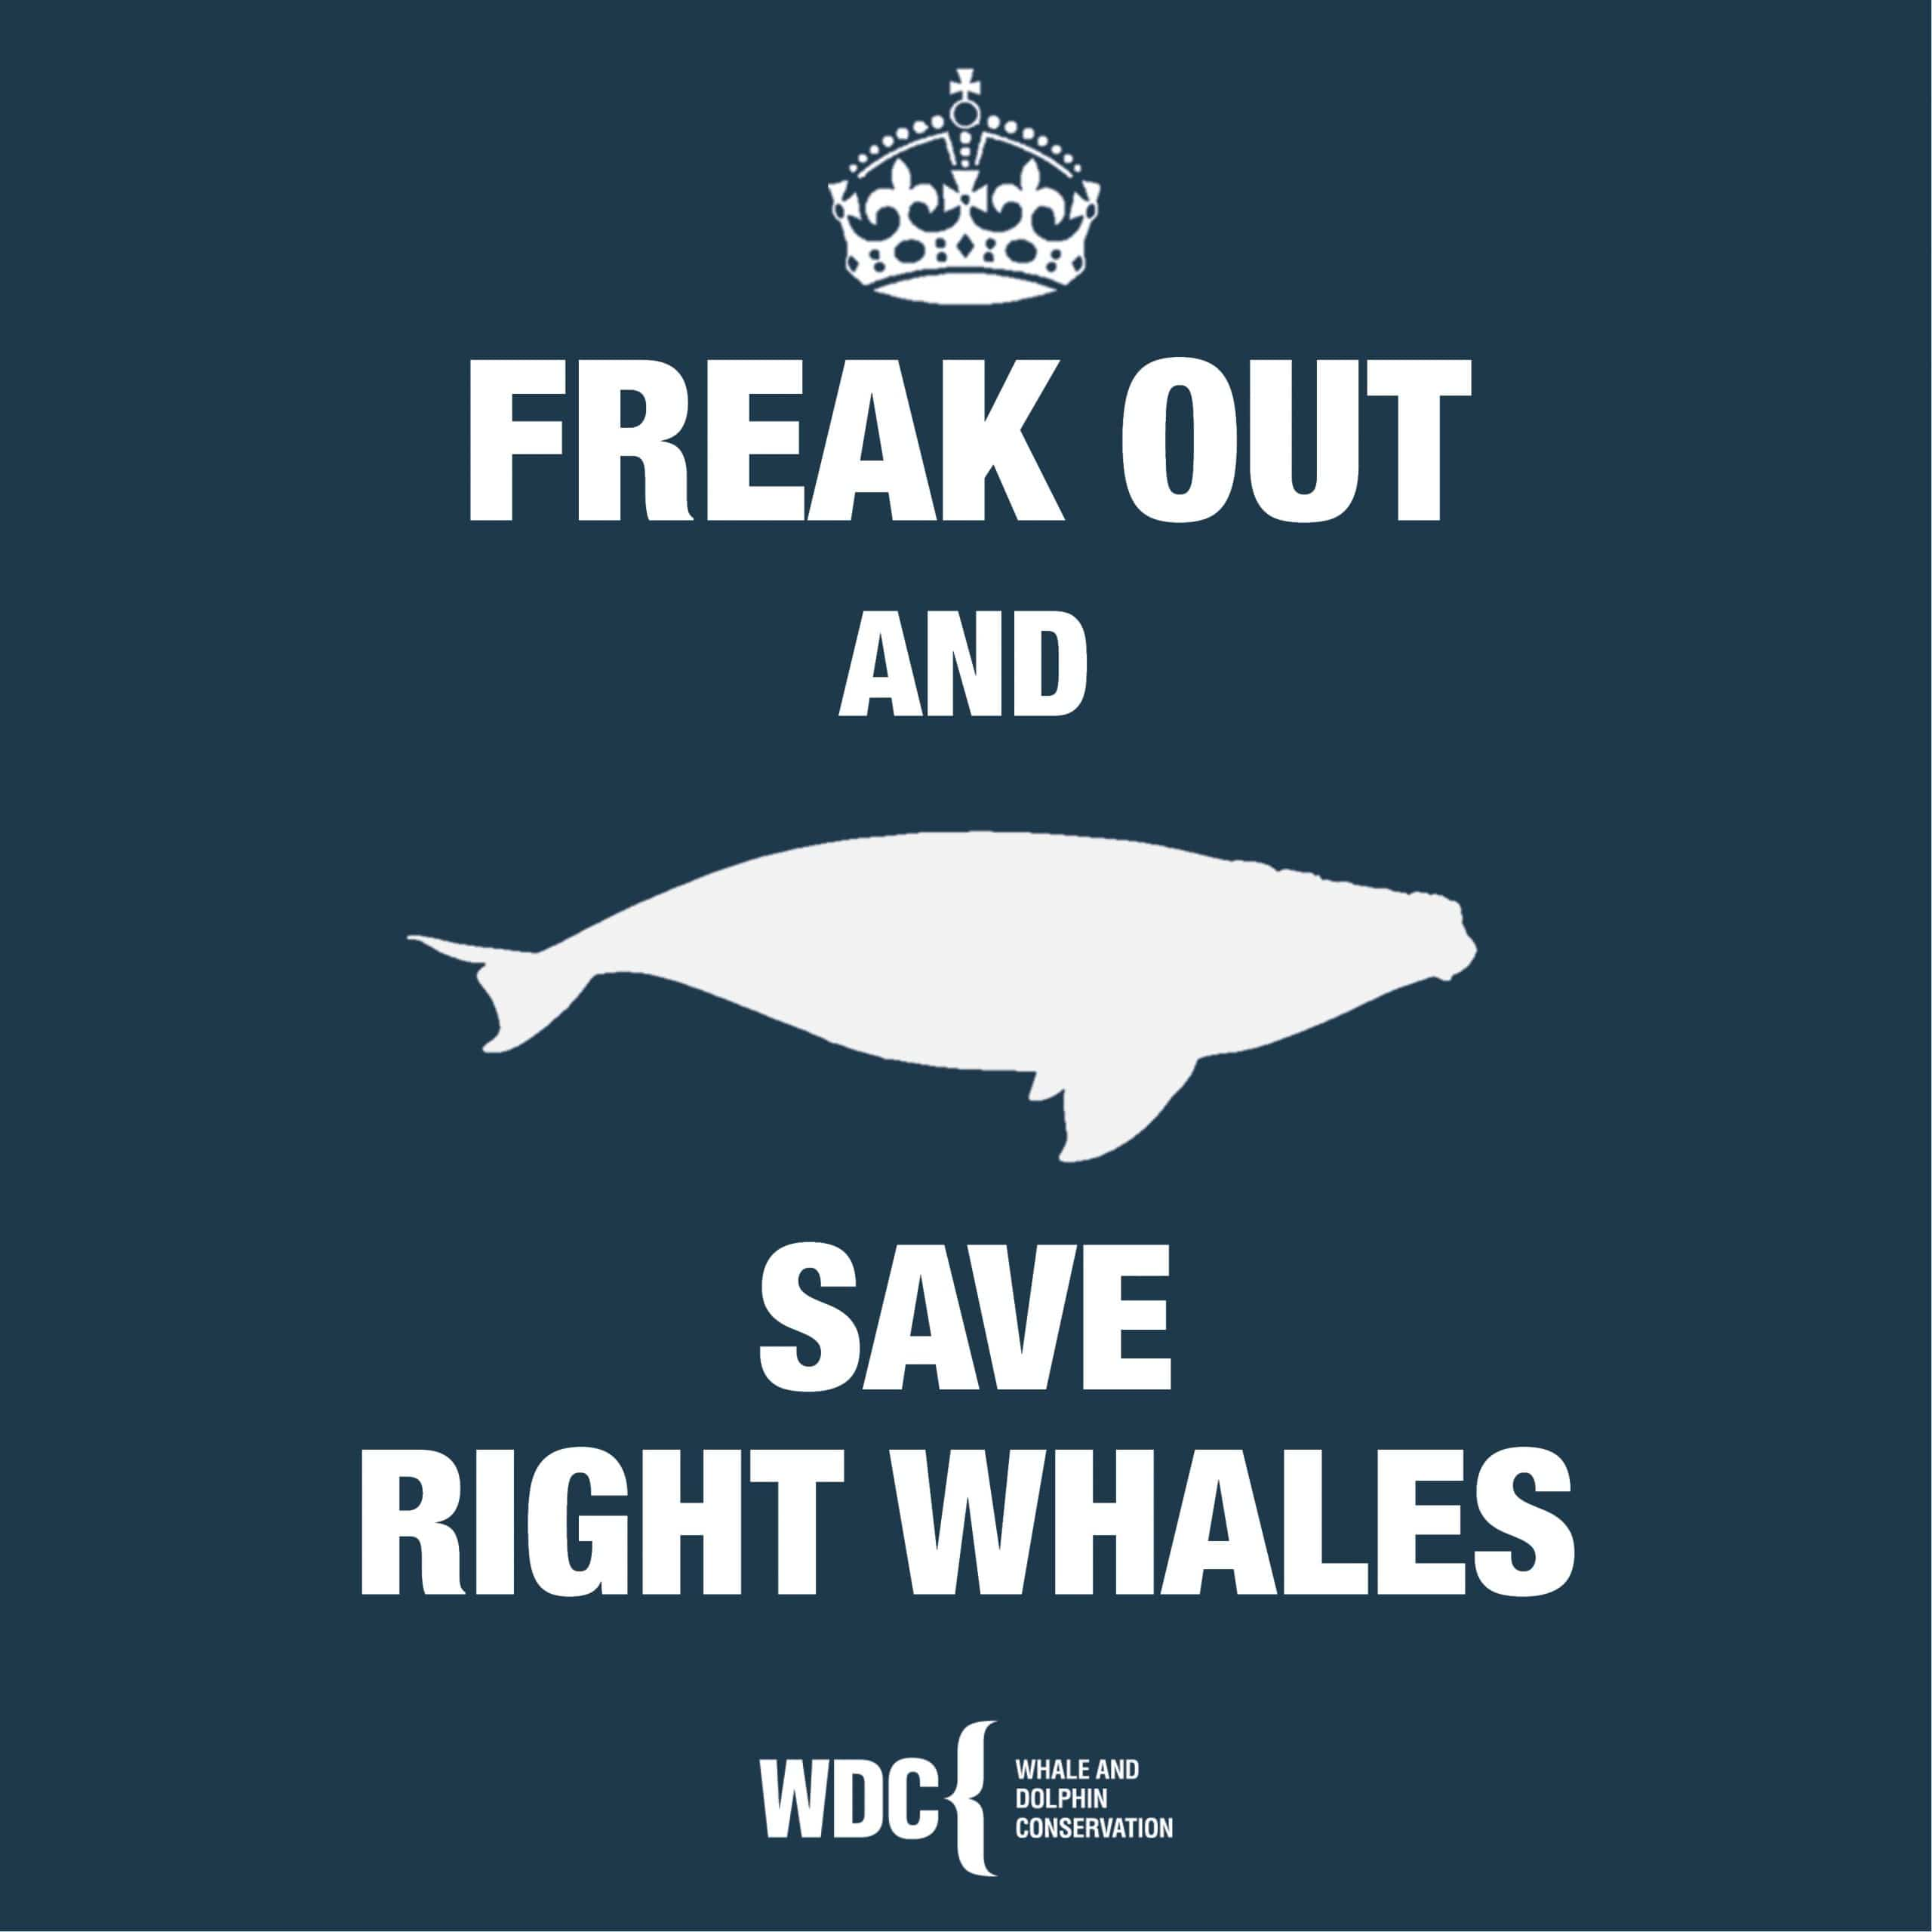 Freak out and save right whales square